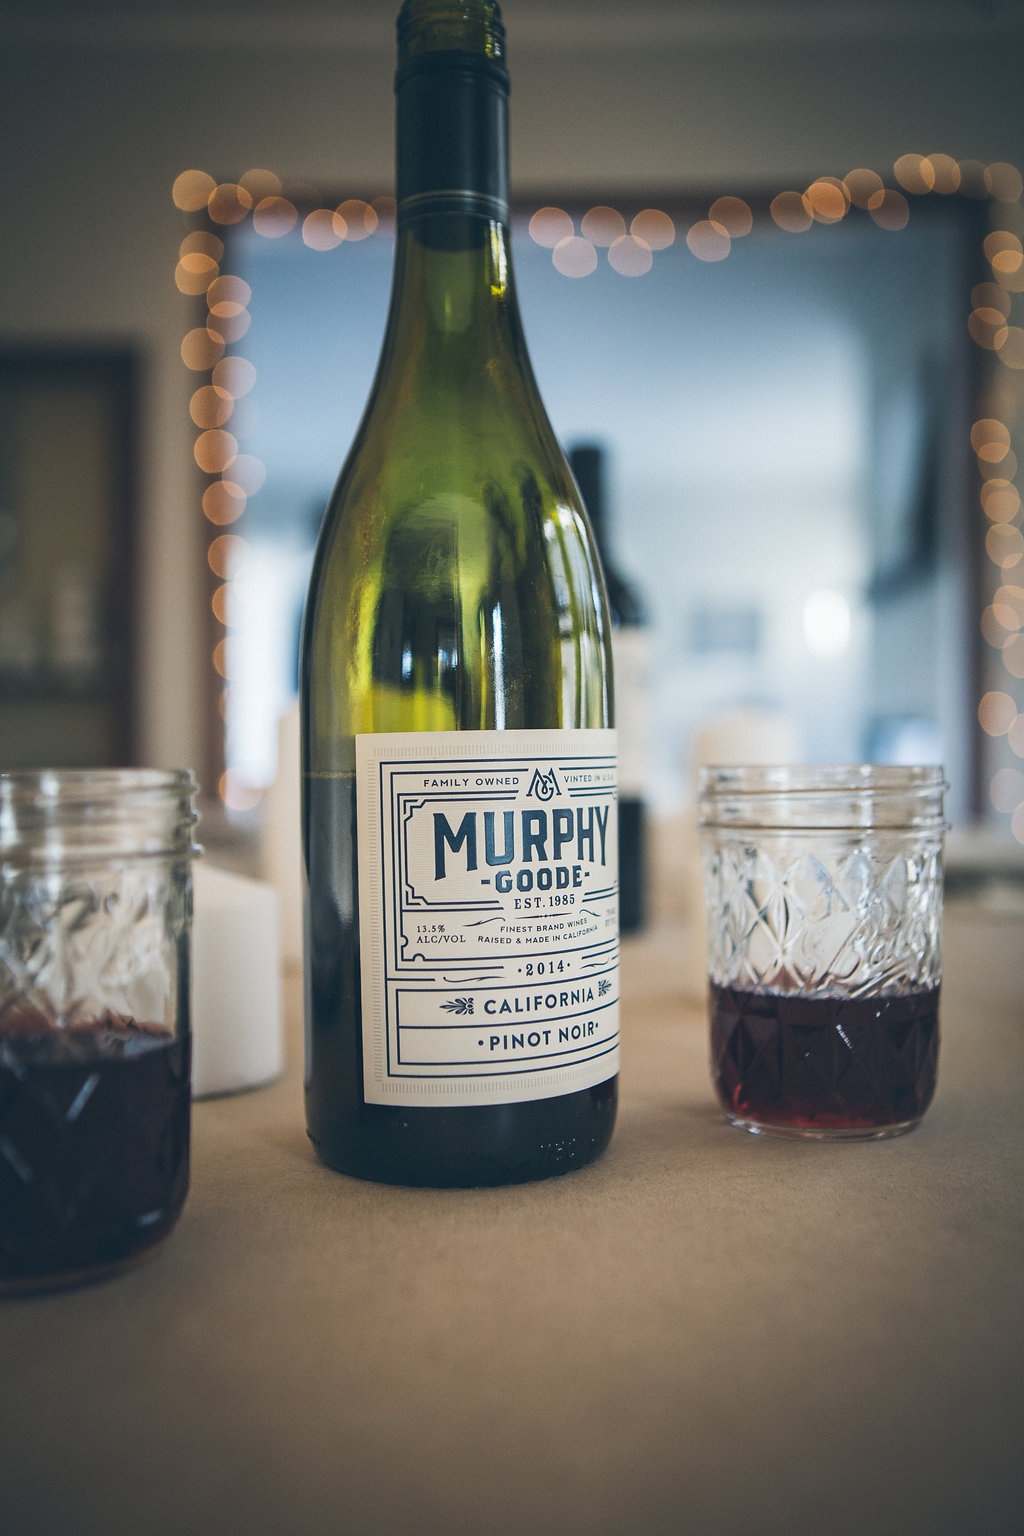 Murphy-Goode Winery Pinot Noir 2014